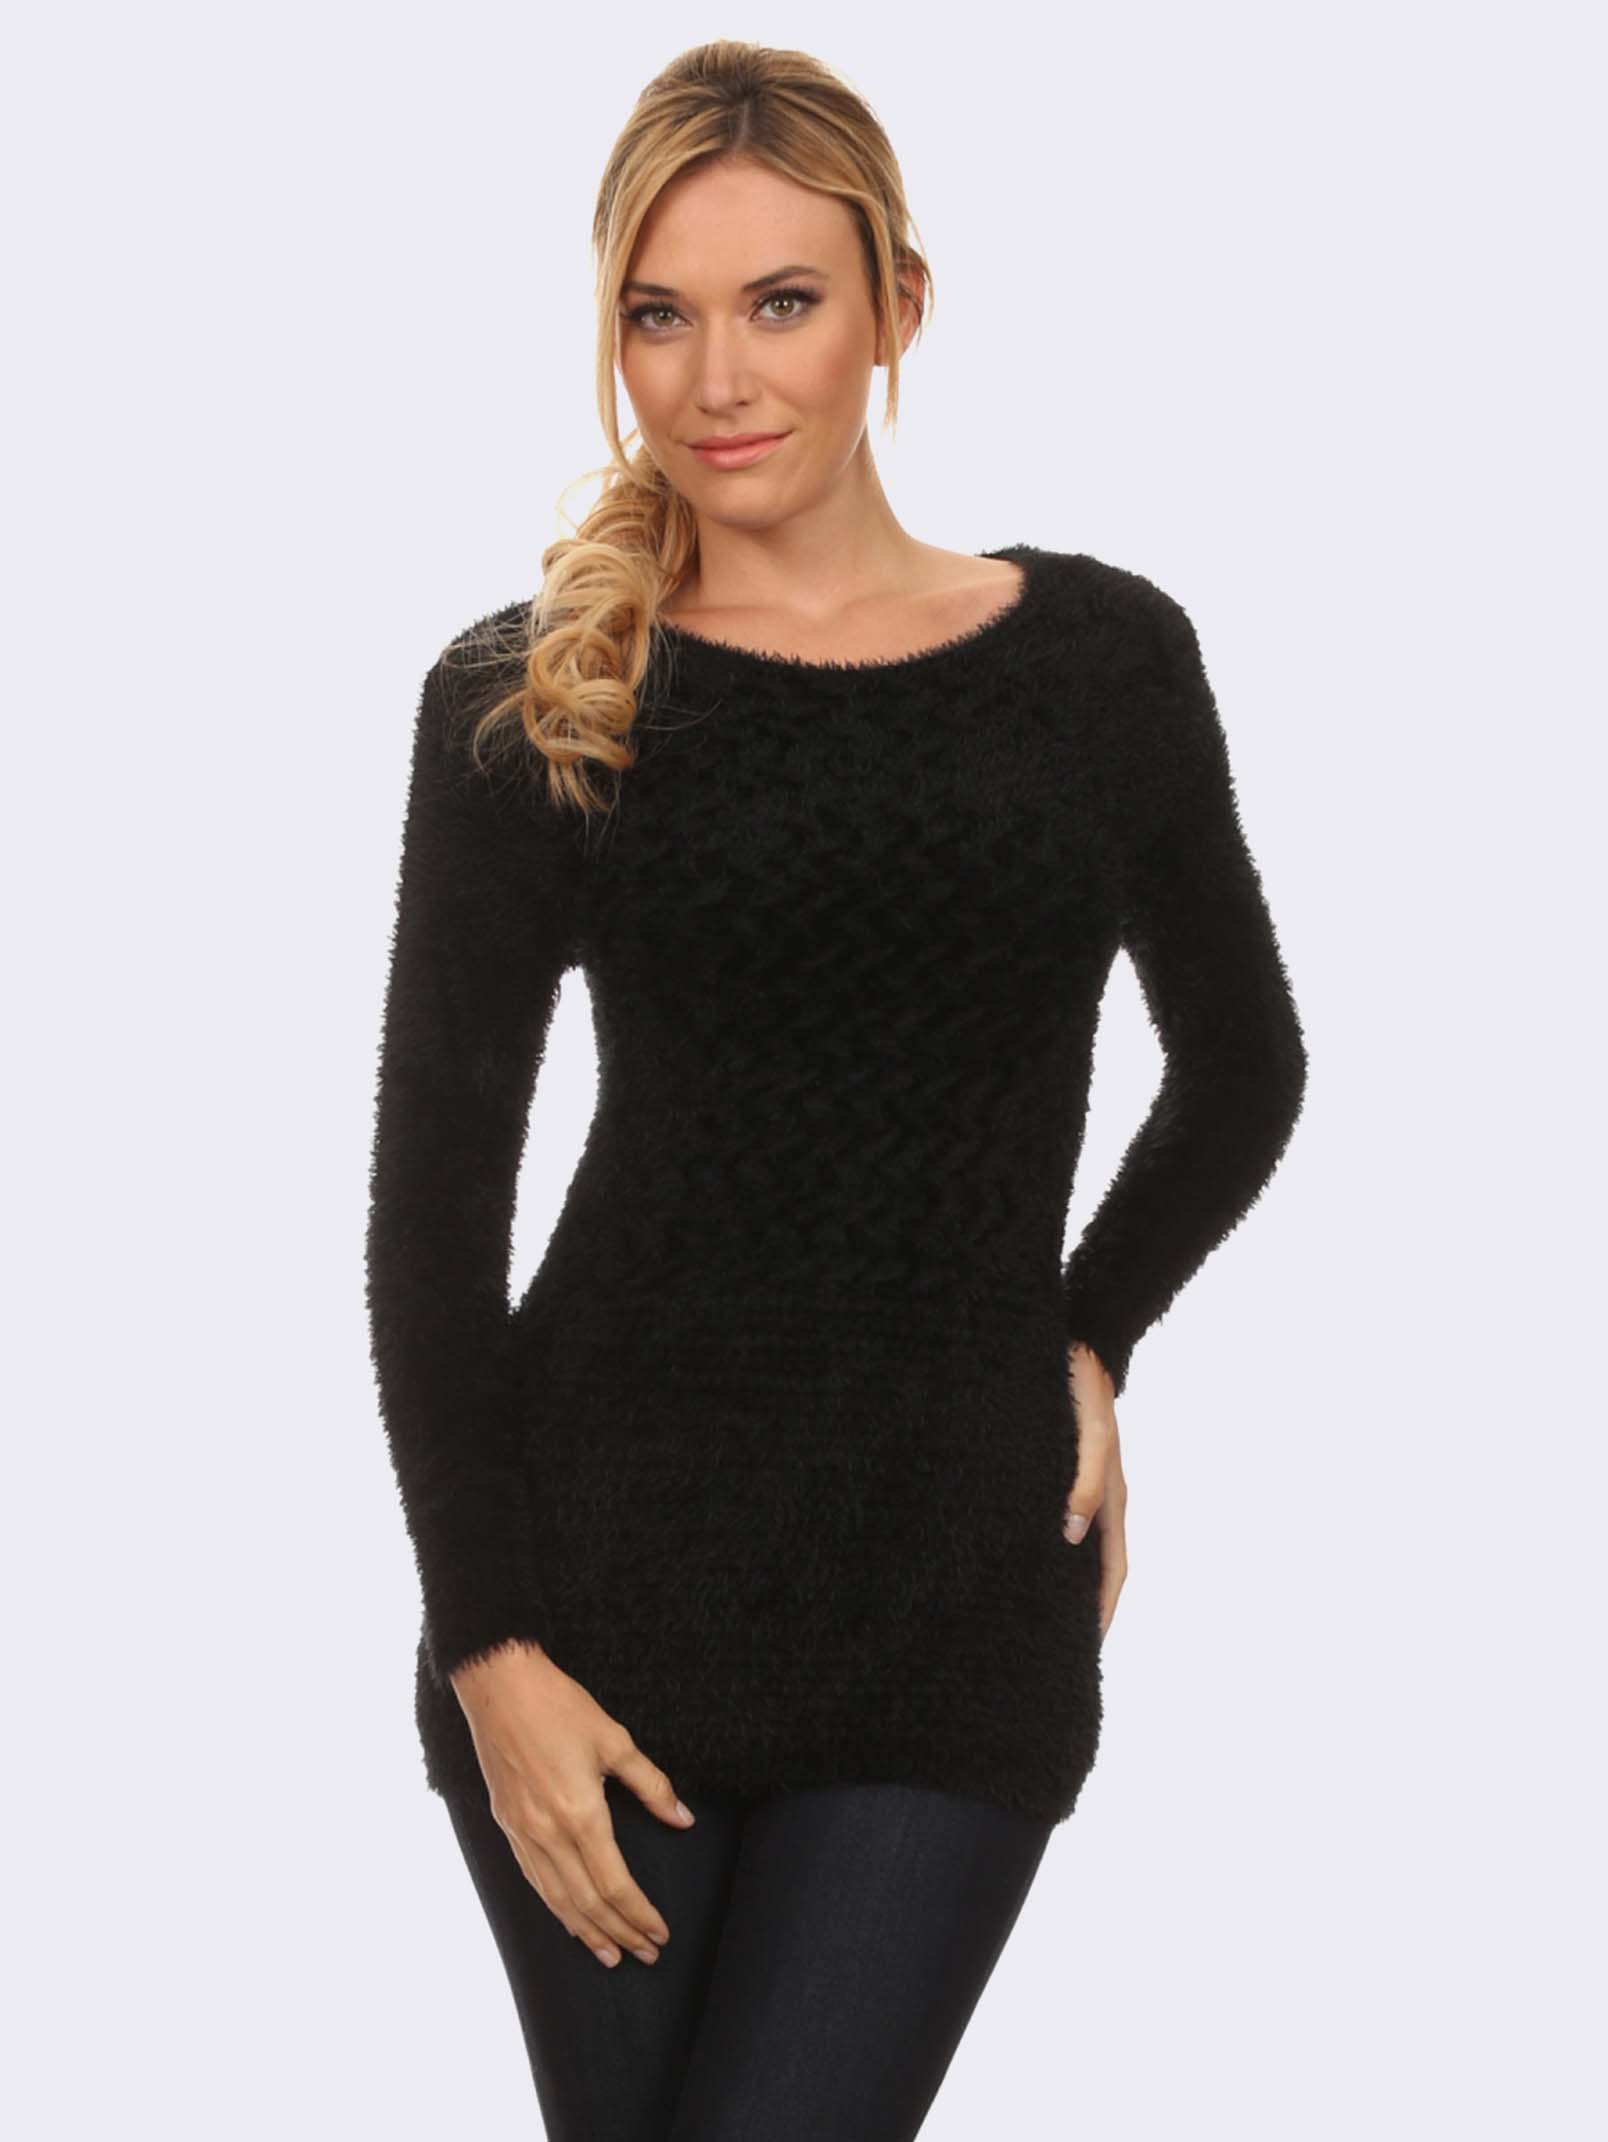 Shop womens swearter dresses cheap sale online, you can buy black sweater dresses, long sleeve sweater dresses, knit sweater dresses and plus size sweater dresses for women at wholesale prices on shopnew-5uel8qry.cf FREE Shipping available worldwide.